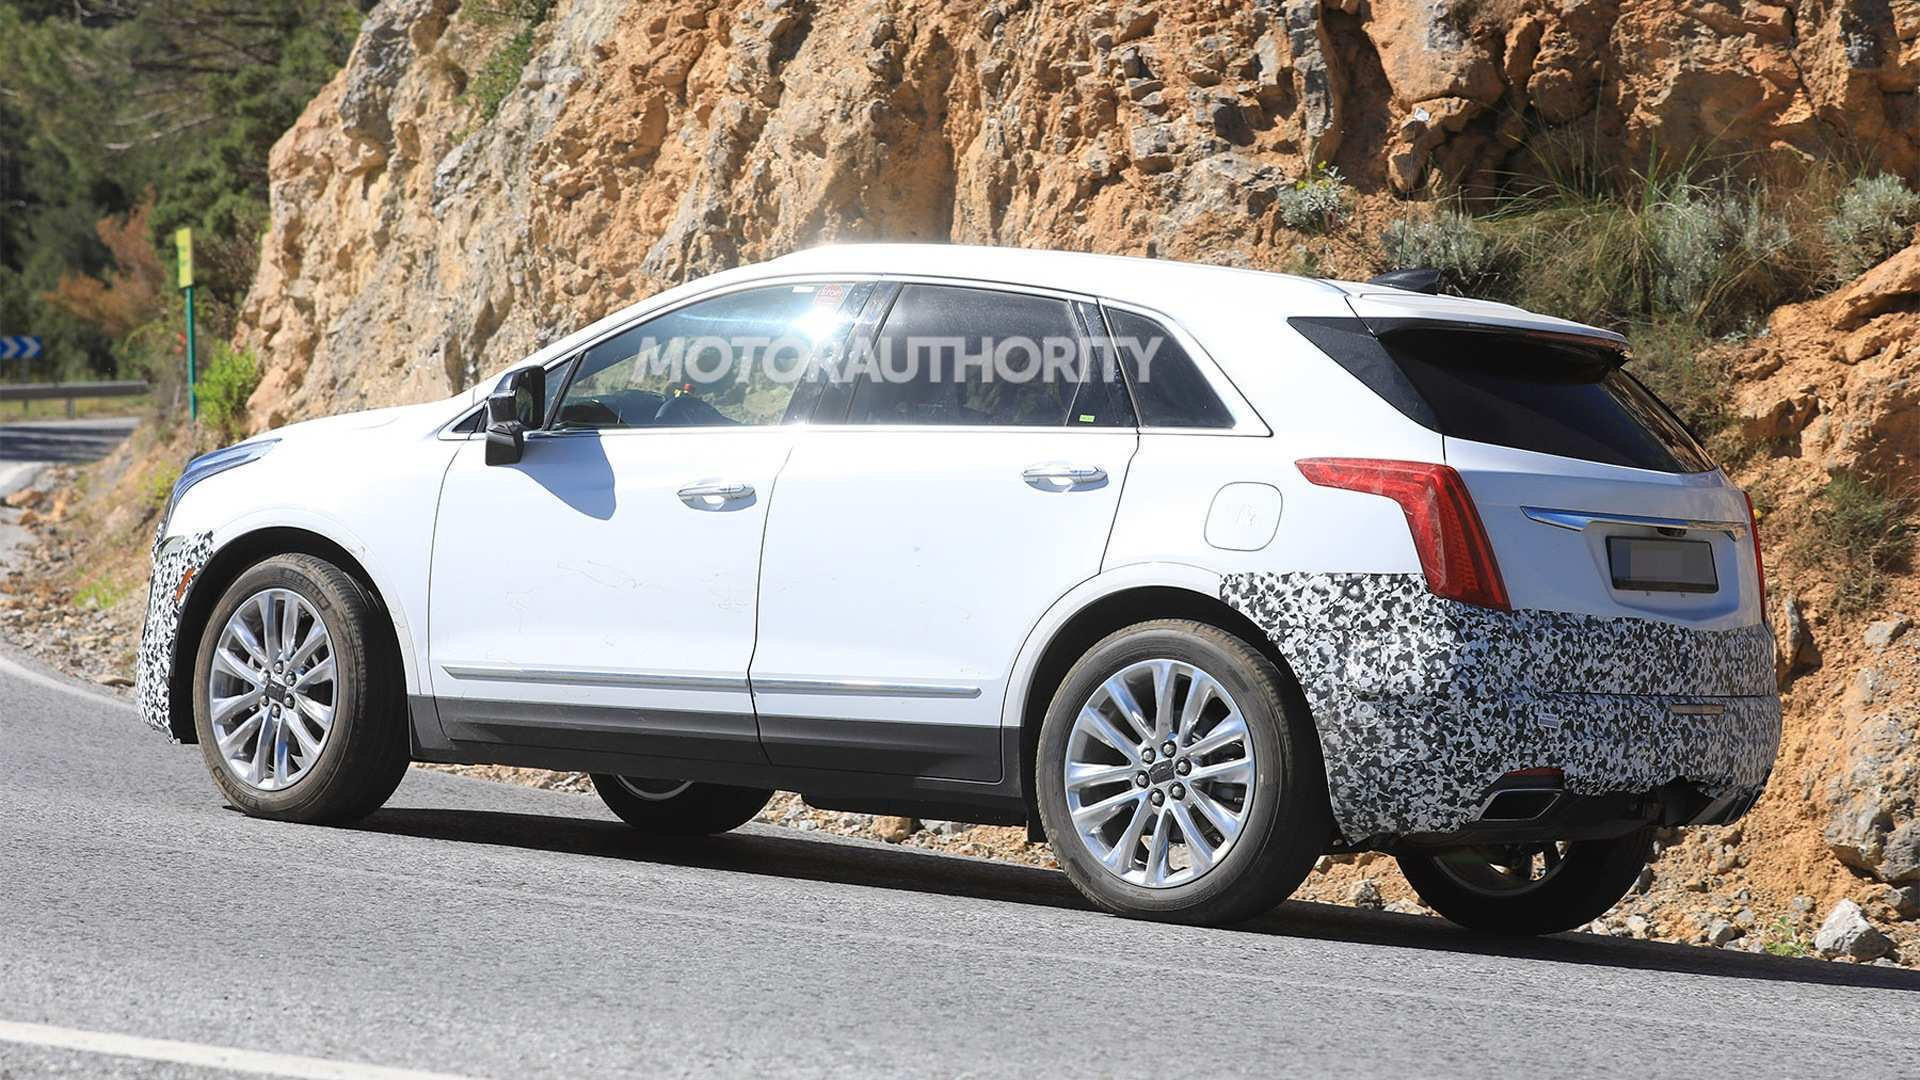 38 Great 2020 Spy Shots Cadillac Xt5 Prices for 2020 Spy Shots Cadillac Xt5